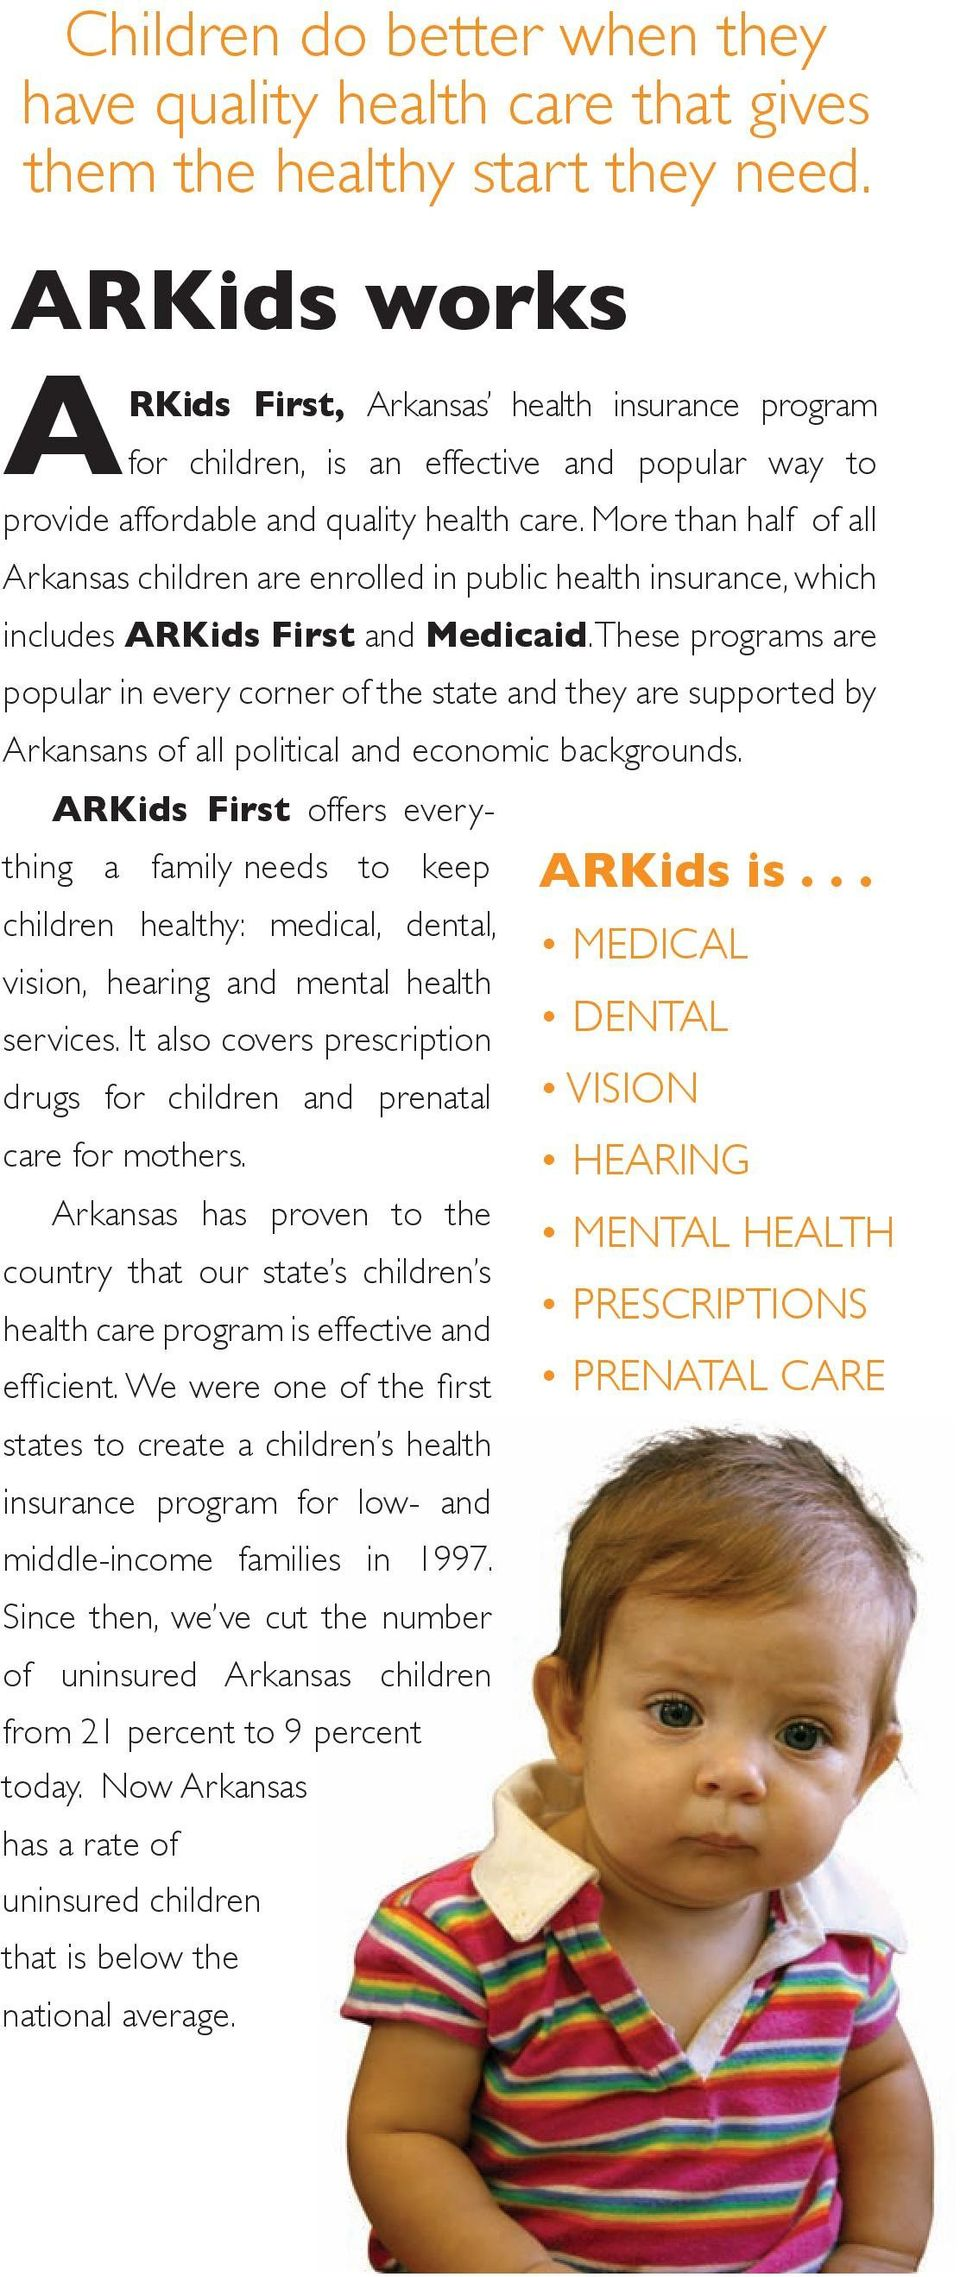 More than half of all Arkansas children are enrolled in public health insurance, which includes ARKids First and Medicaid.